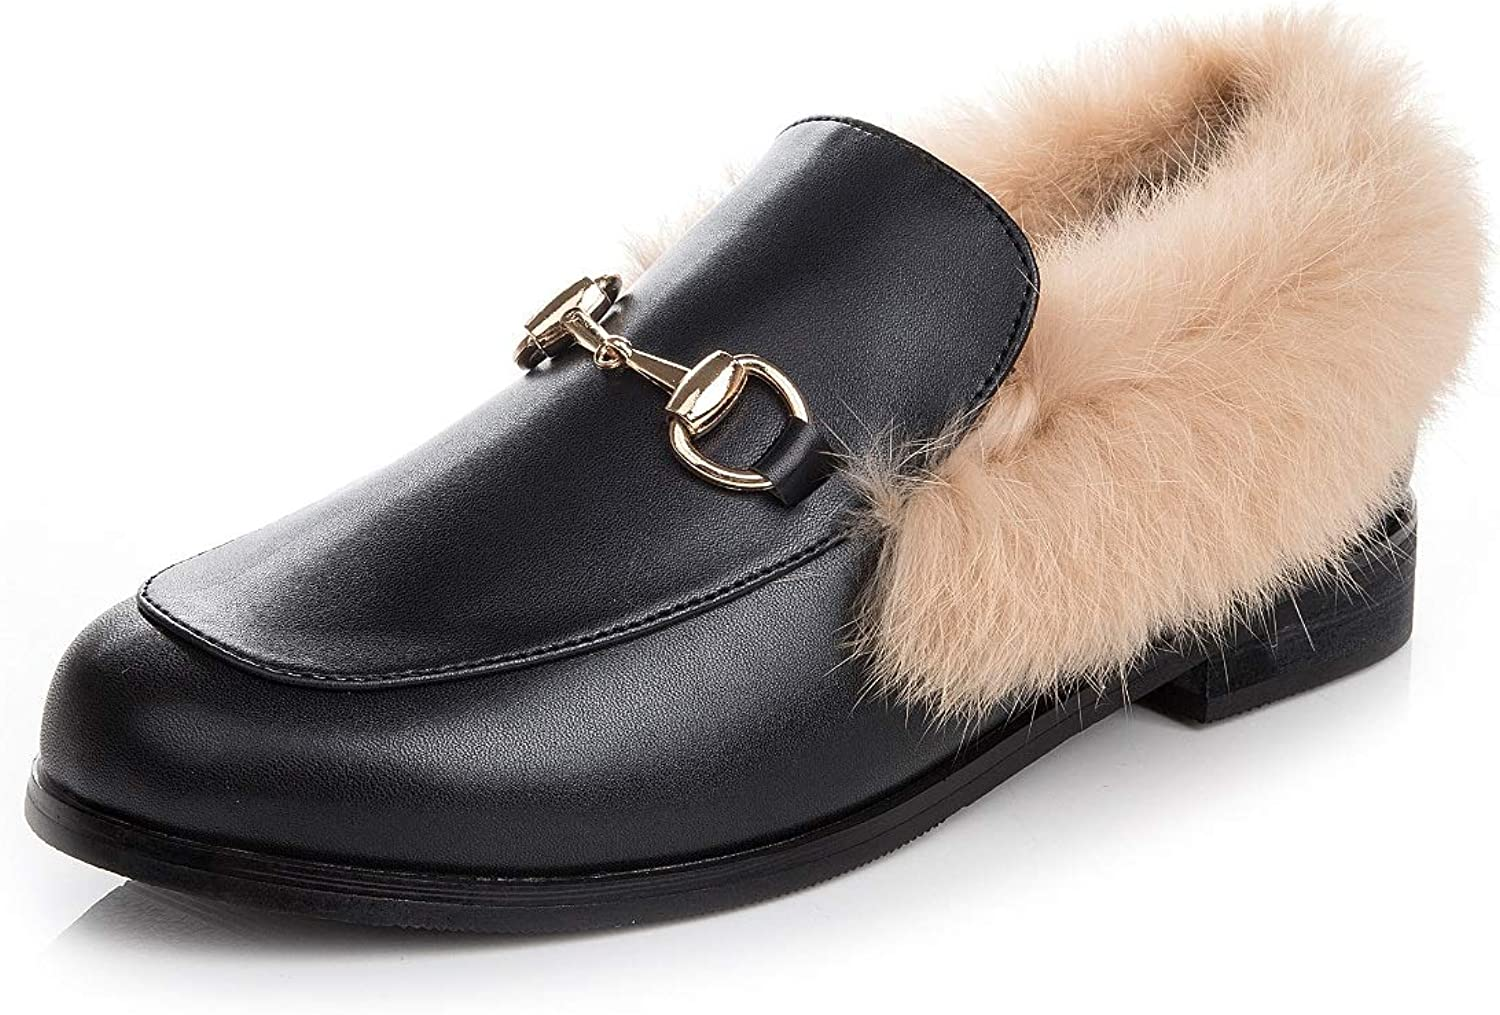 Women's Fur Lining Waterproof Winter Outdoor Non-Slip Warm Flat shoes Ankle Snow Boots Rabbit Fur Decoration Low to Help Casual Comfort shoes